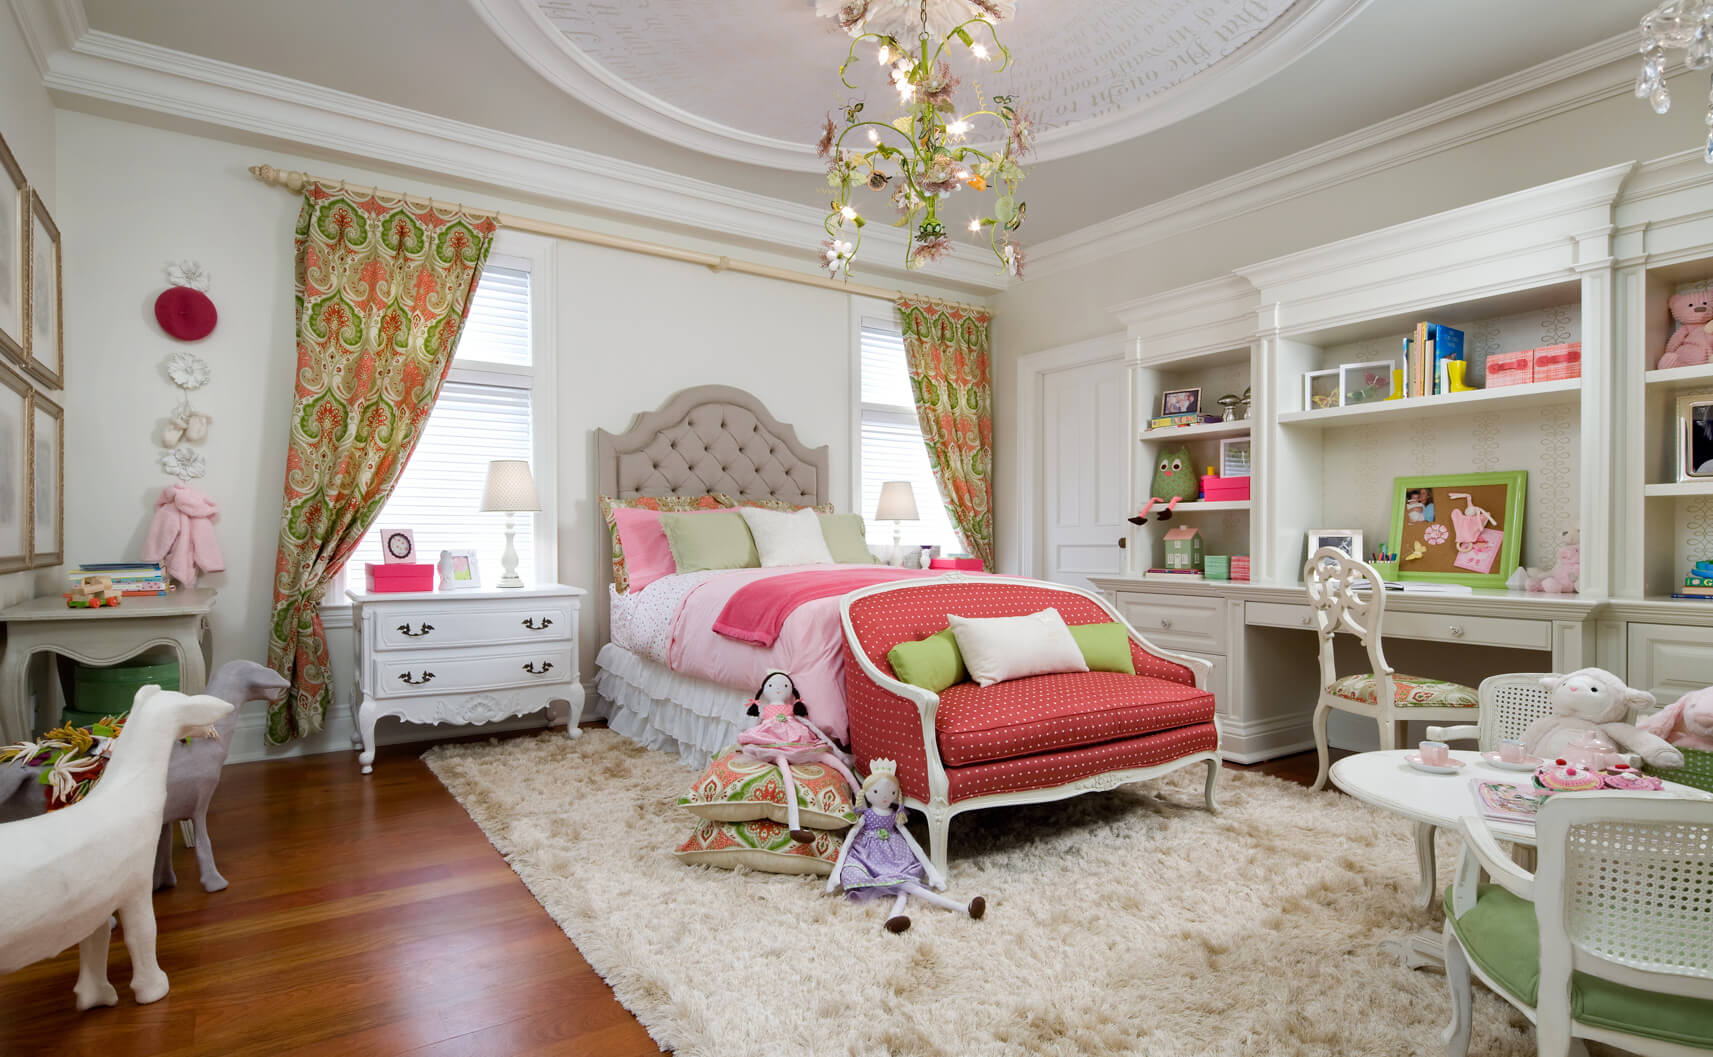 resplendent little girl's room by candice olson design and brandon